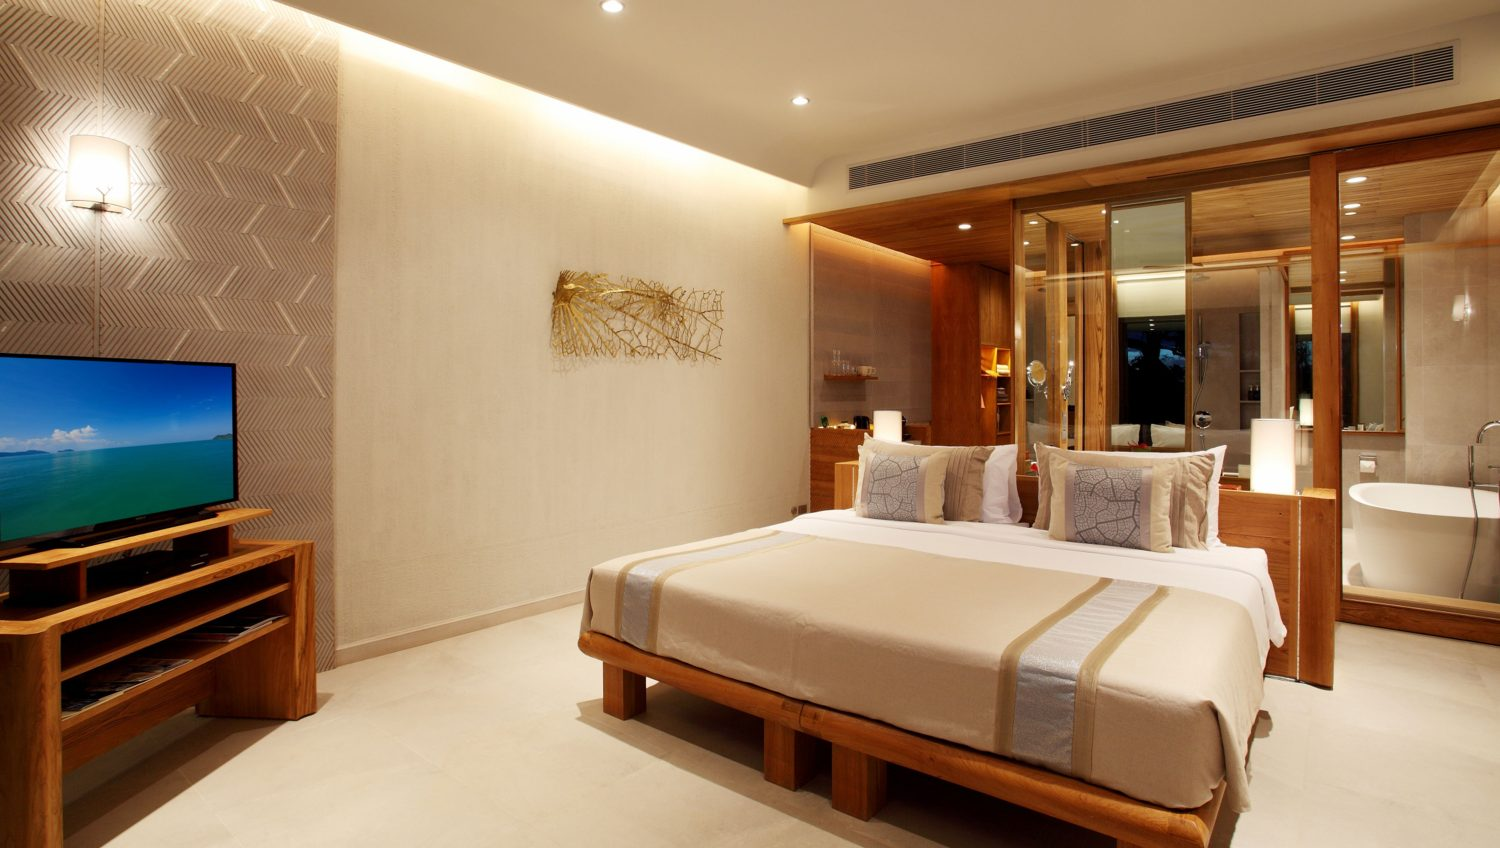 4-Pool-Suite-West-with-Private-Pool-Sri-Panwa-Luxury-Hotel-Phuket1